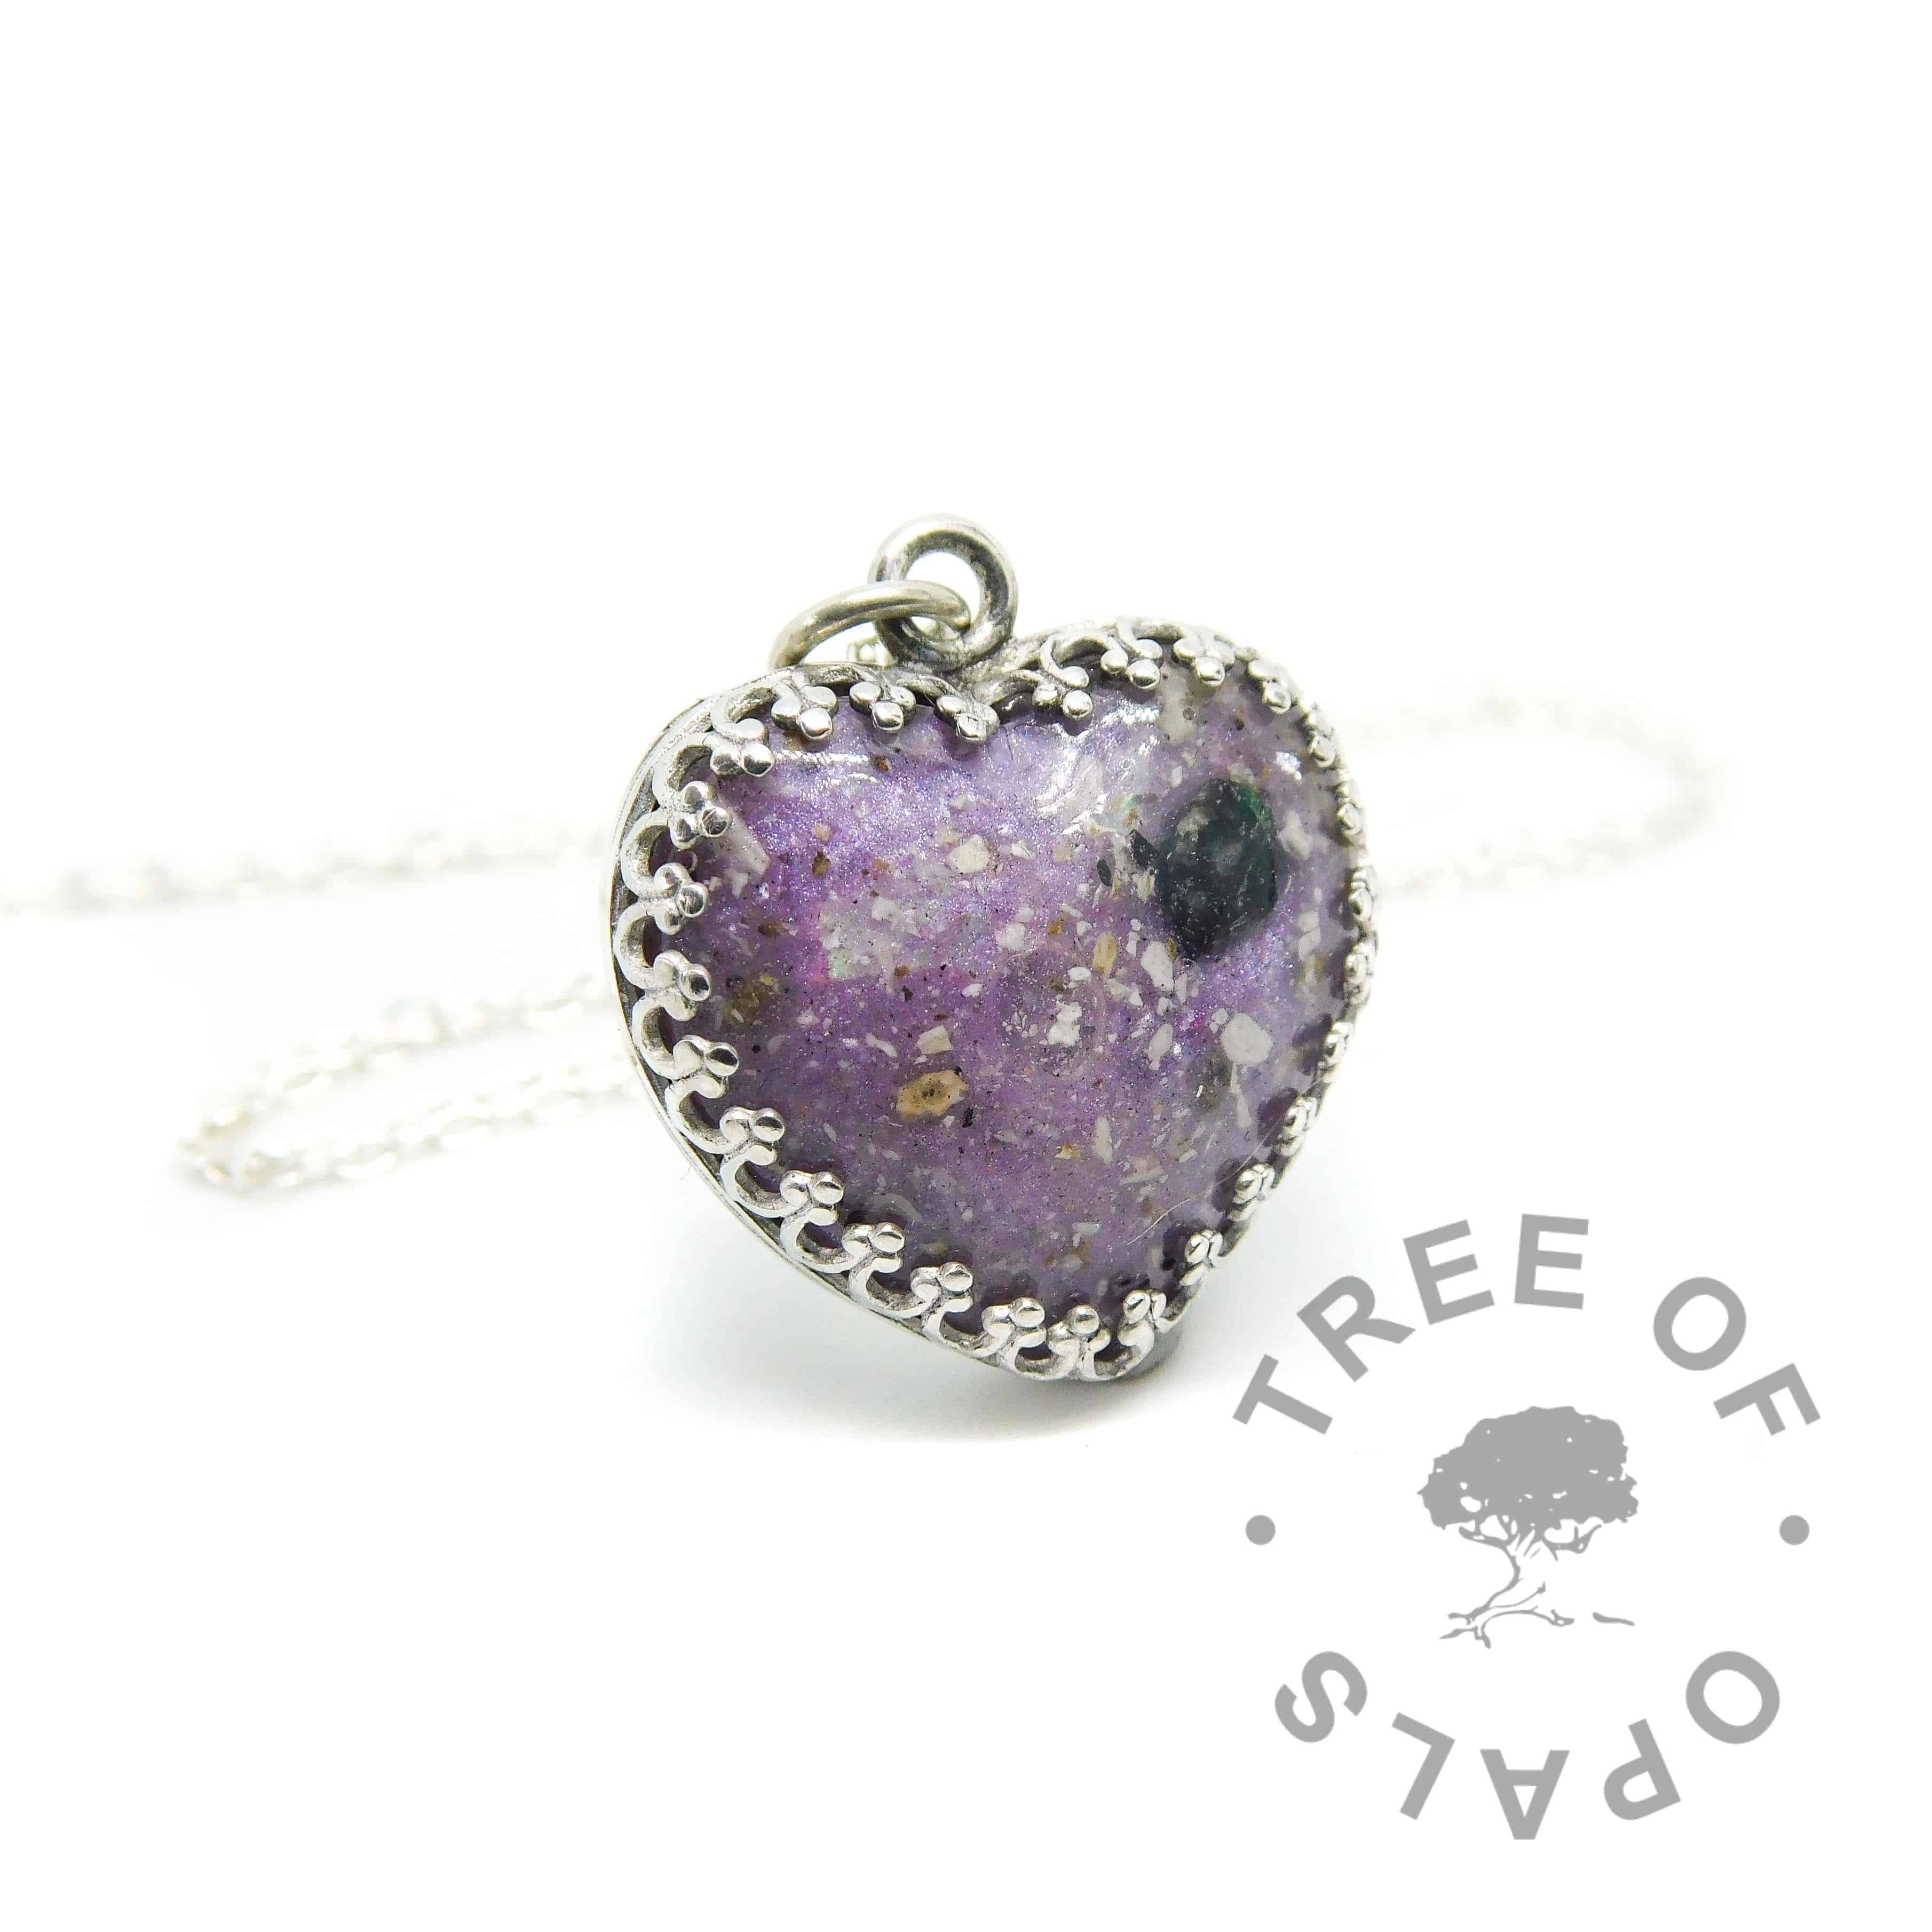 cremation ash heart necklace with orchid purple resin sparkle mix, rough natural emerald May birthstone. 20mm sterling silver crown point heart necklace setting. Watermarked copyright Tree of Opals memorial jewellery image